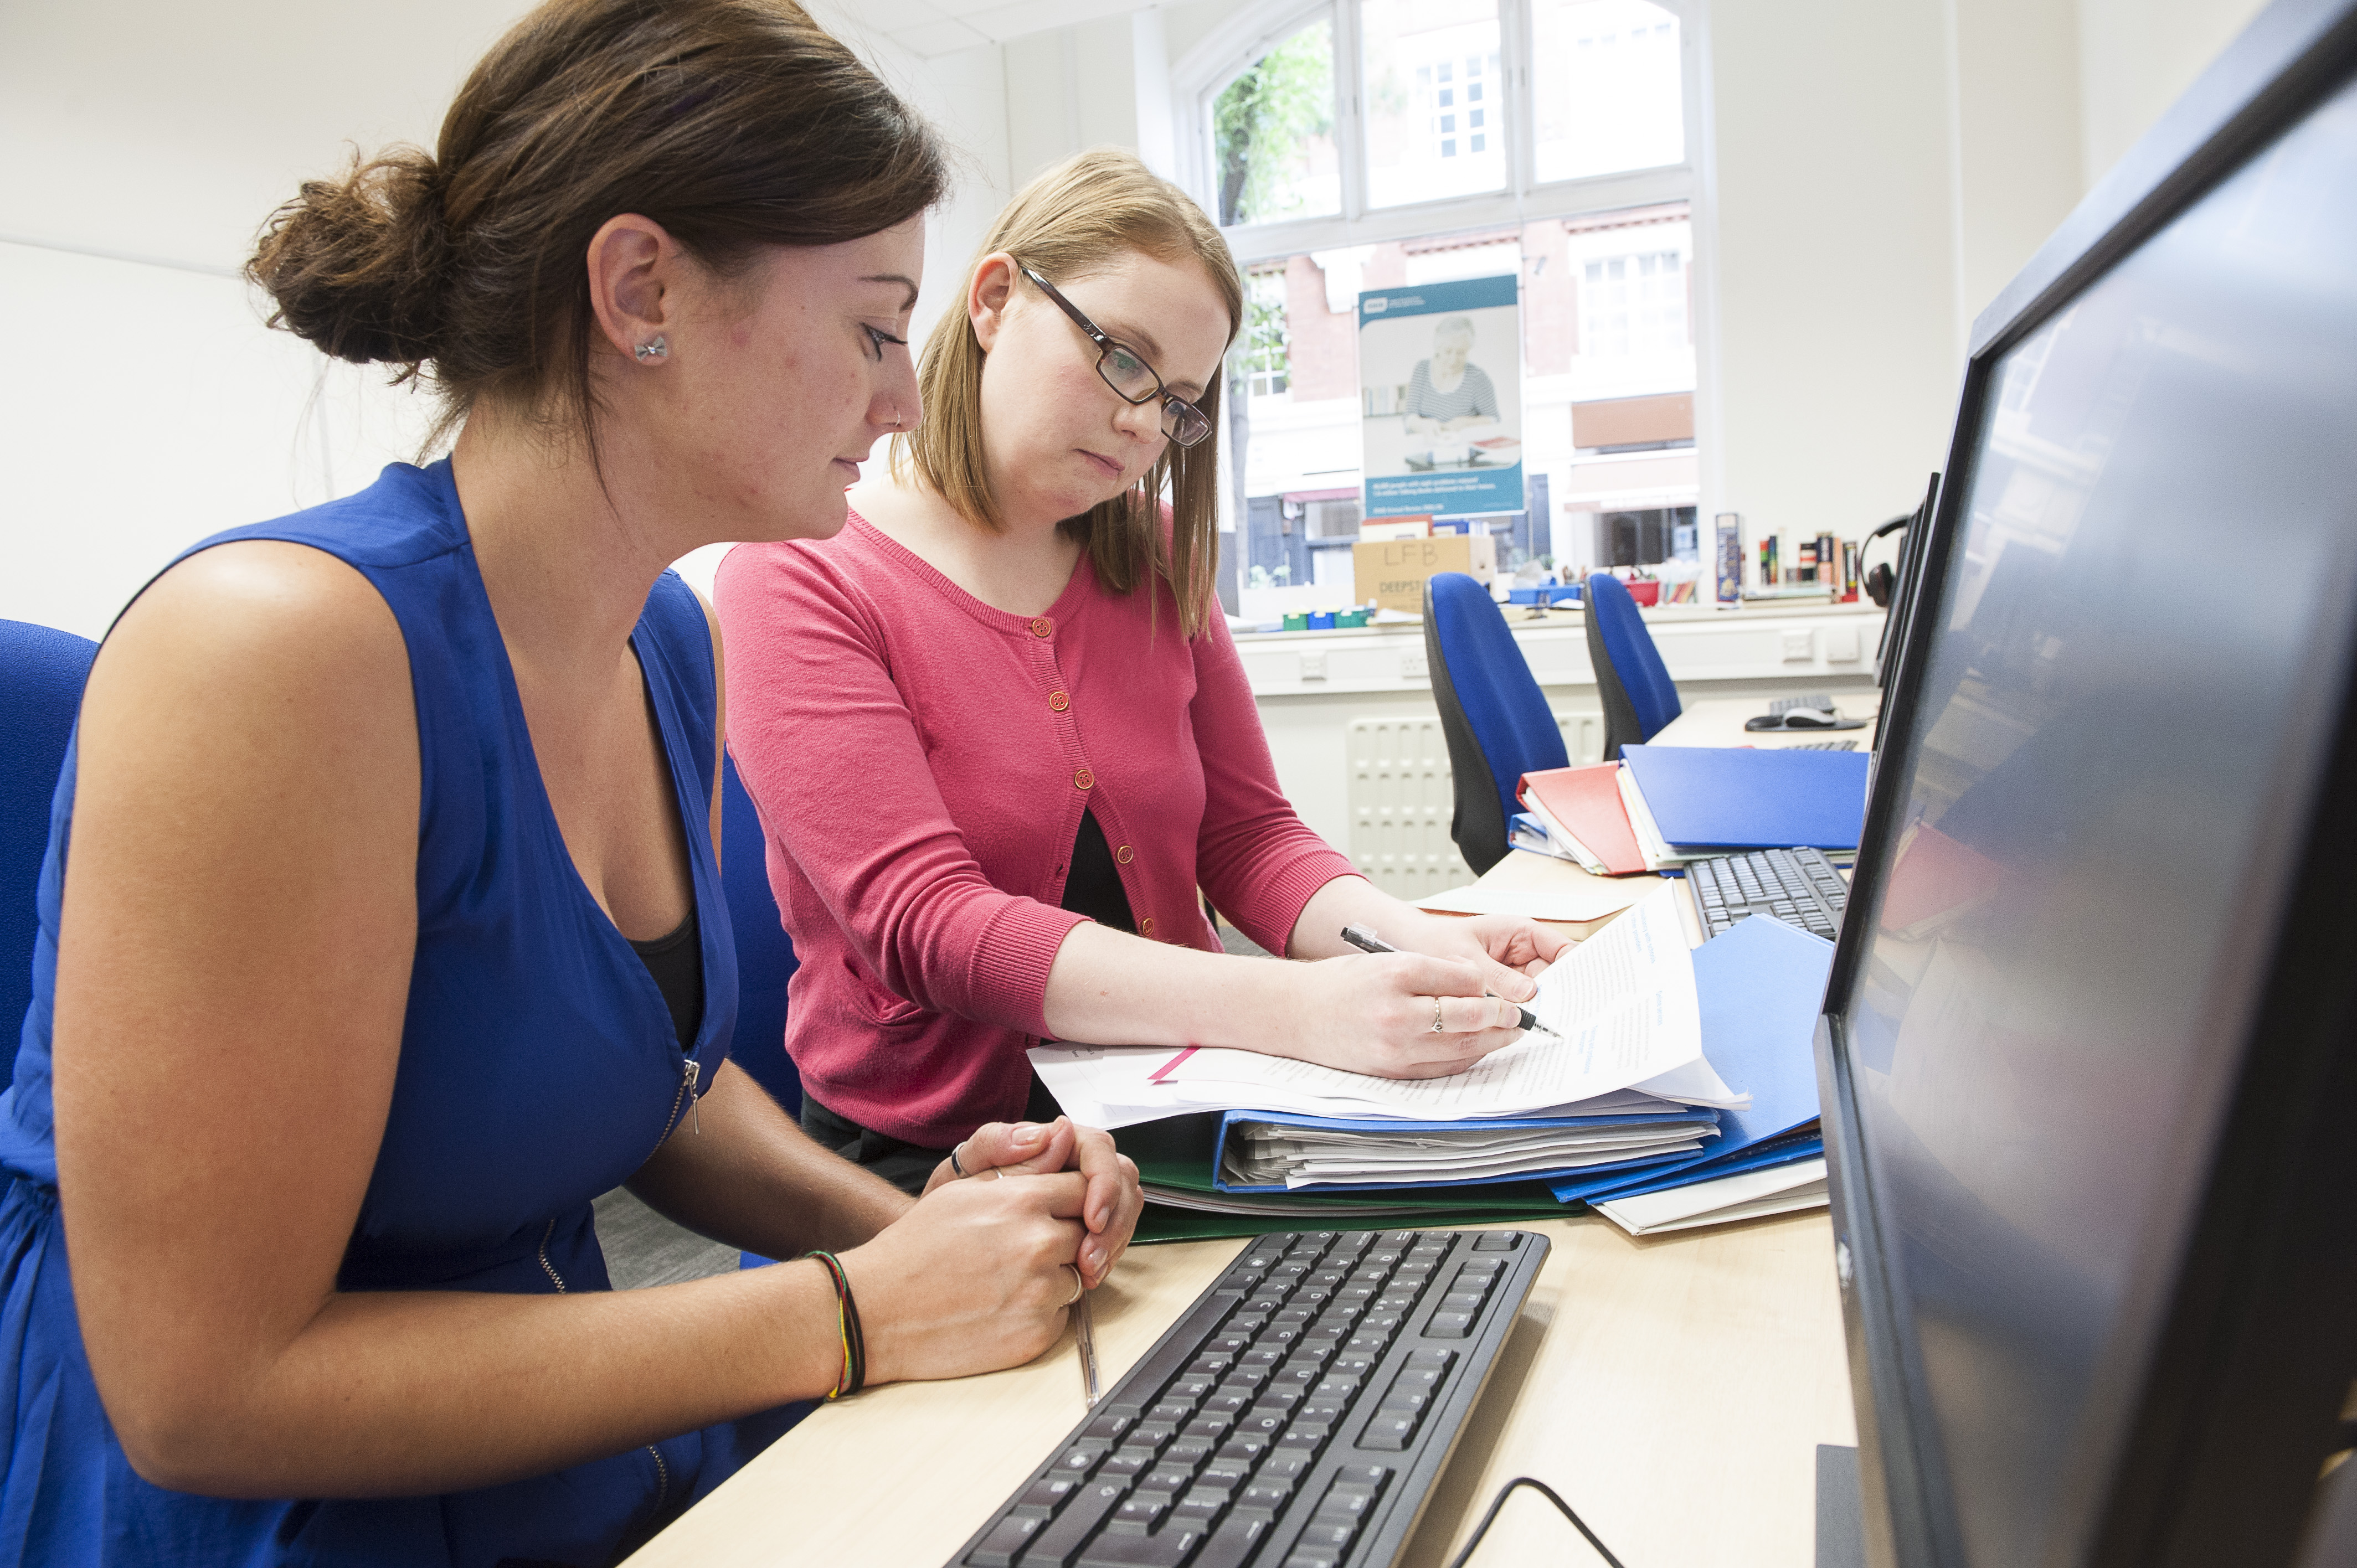 Course Image DACPD93-0320 - Developing Writing Skills in Adults with Dyslexia